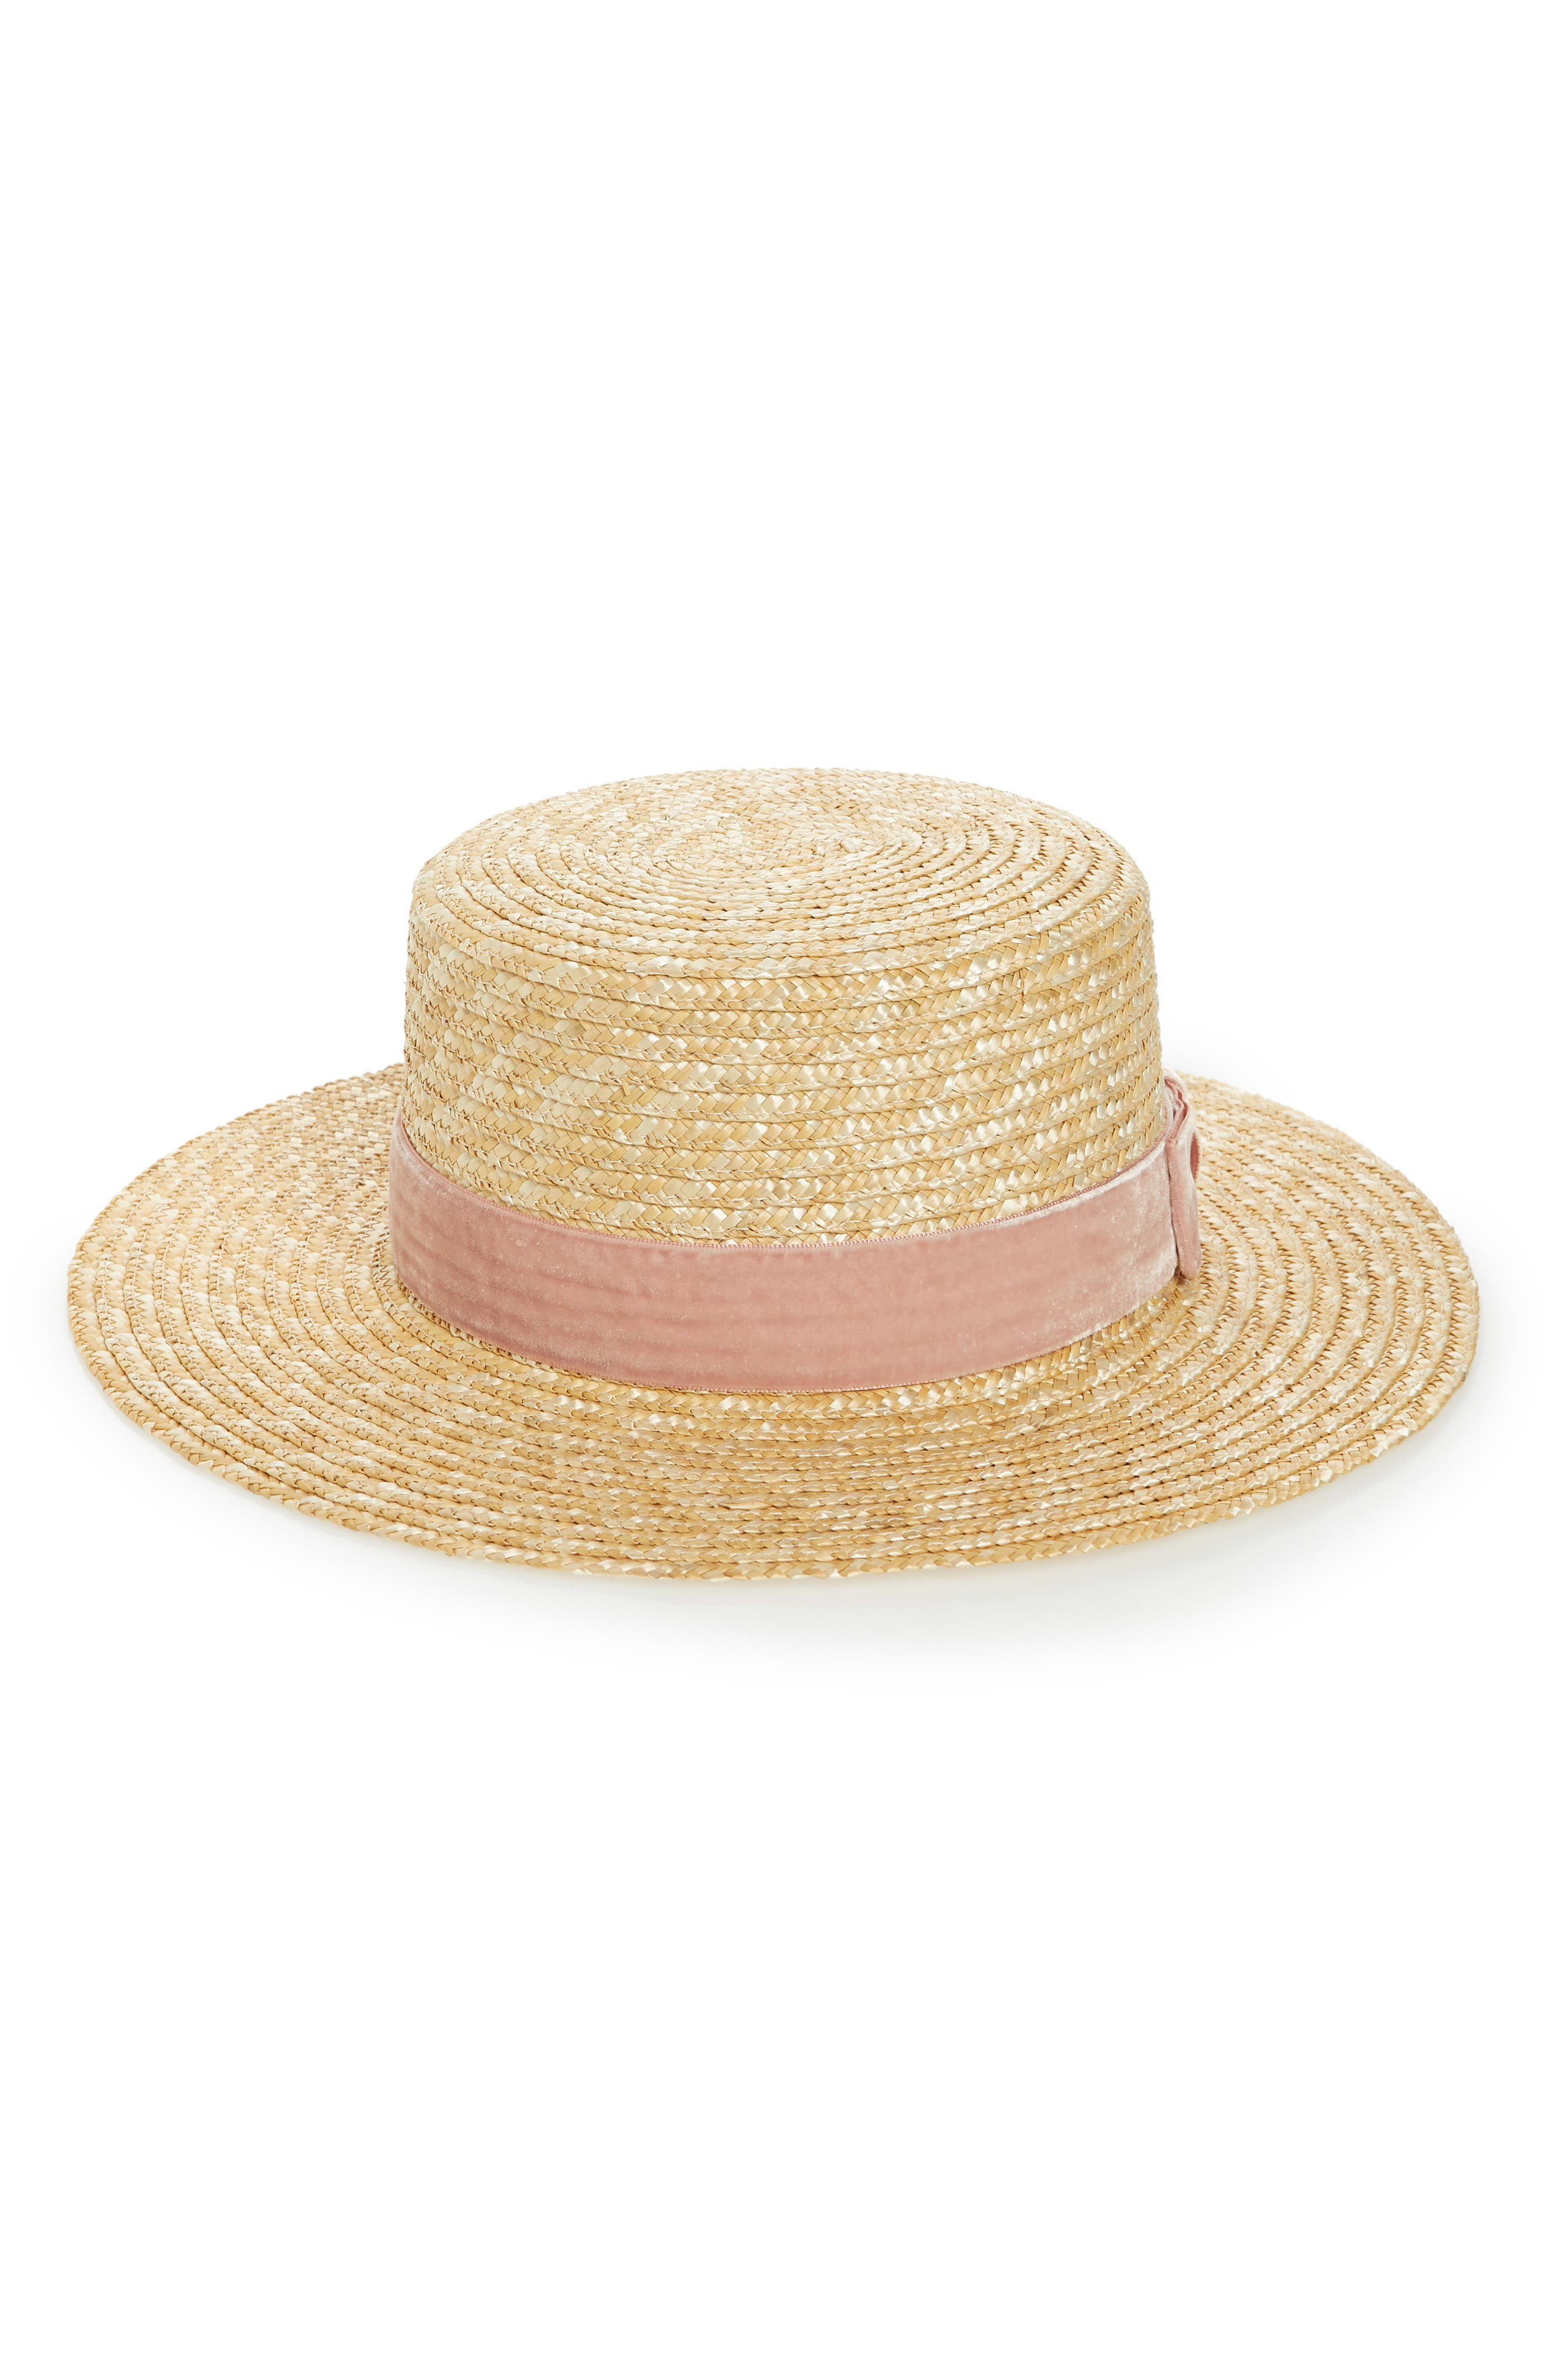 Pink Velour Straw Hat,                             Main thumbnail 1, color,                             200